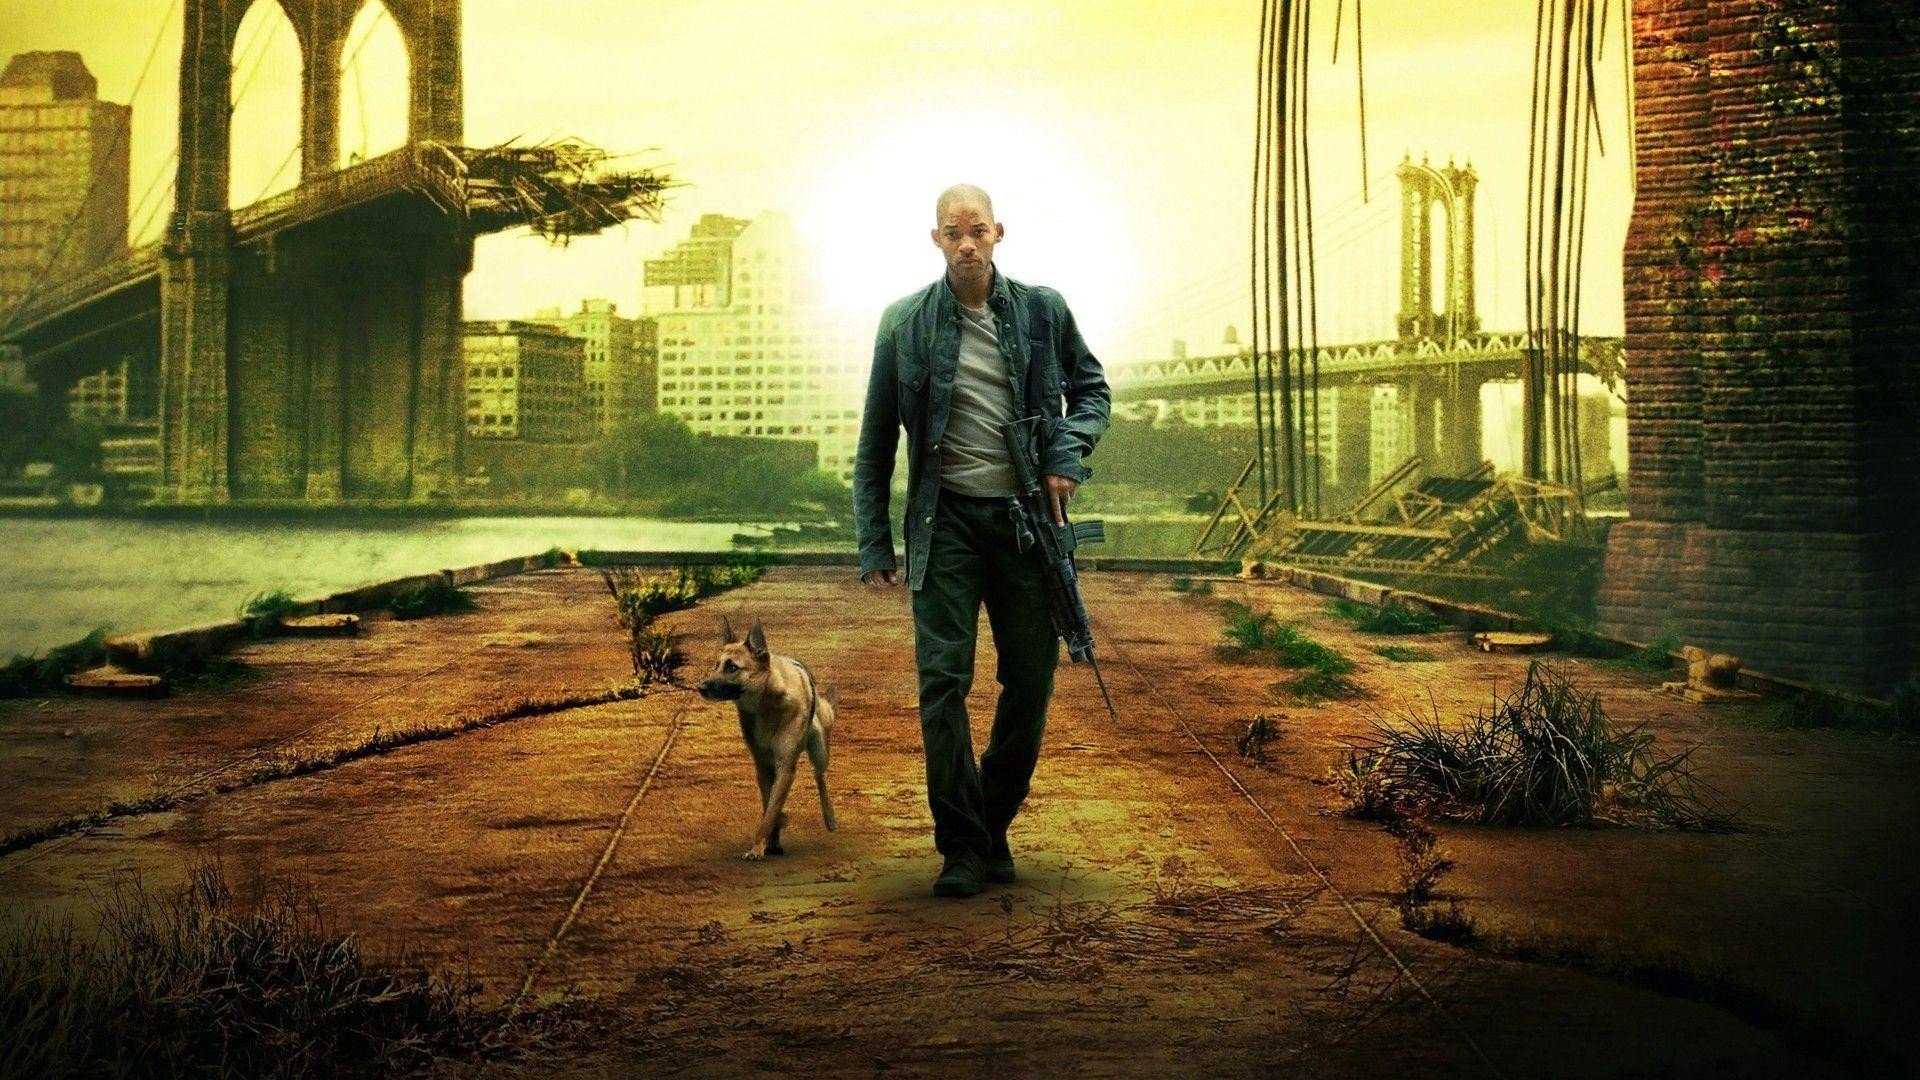 1920x1080 Will Smith Best Stills in I am Legend - HD Wallpapers Free .